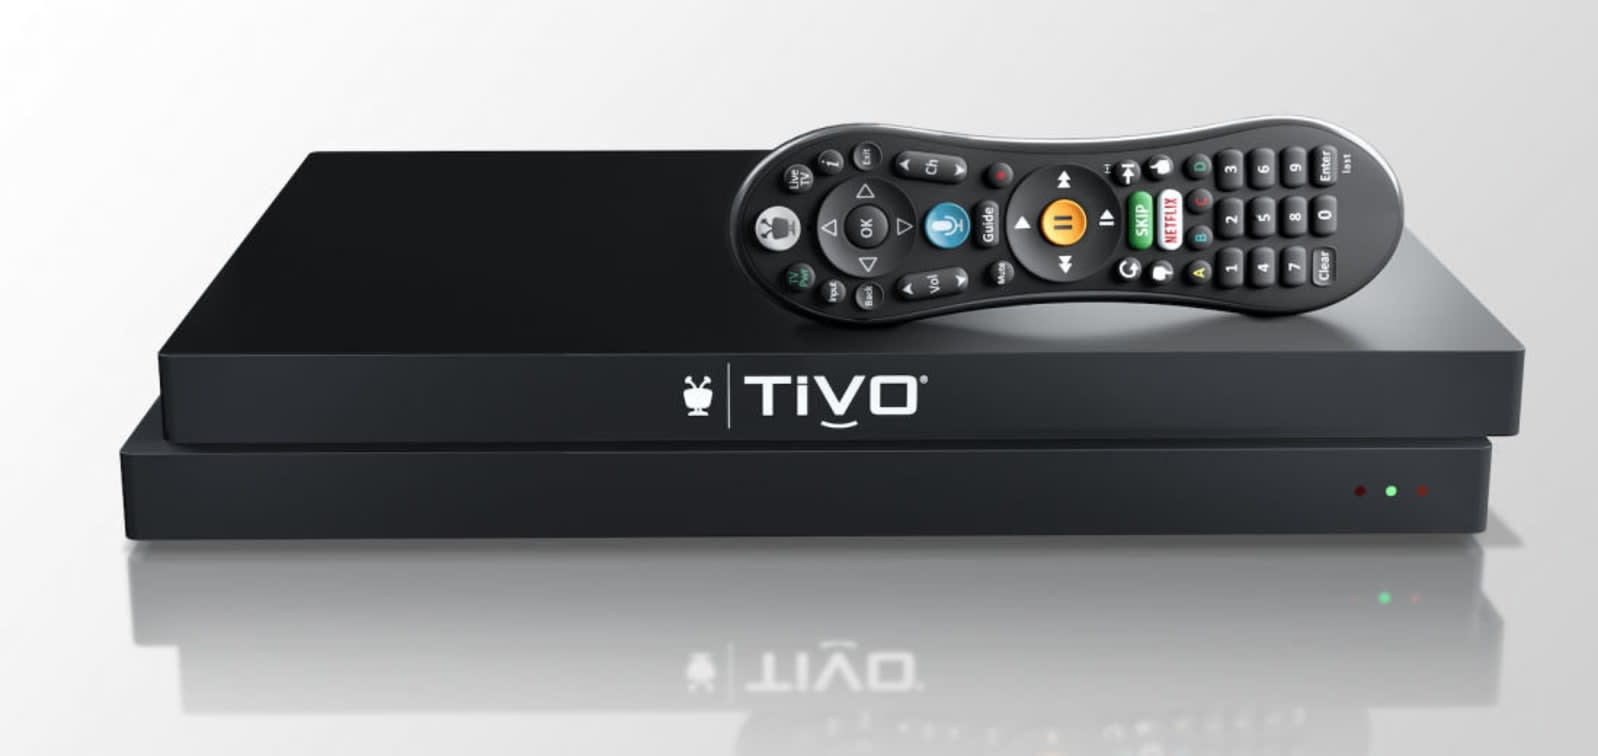 TiVo's iPhone app finally streams shows using cellular data